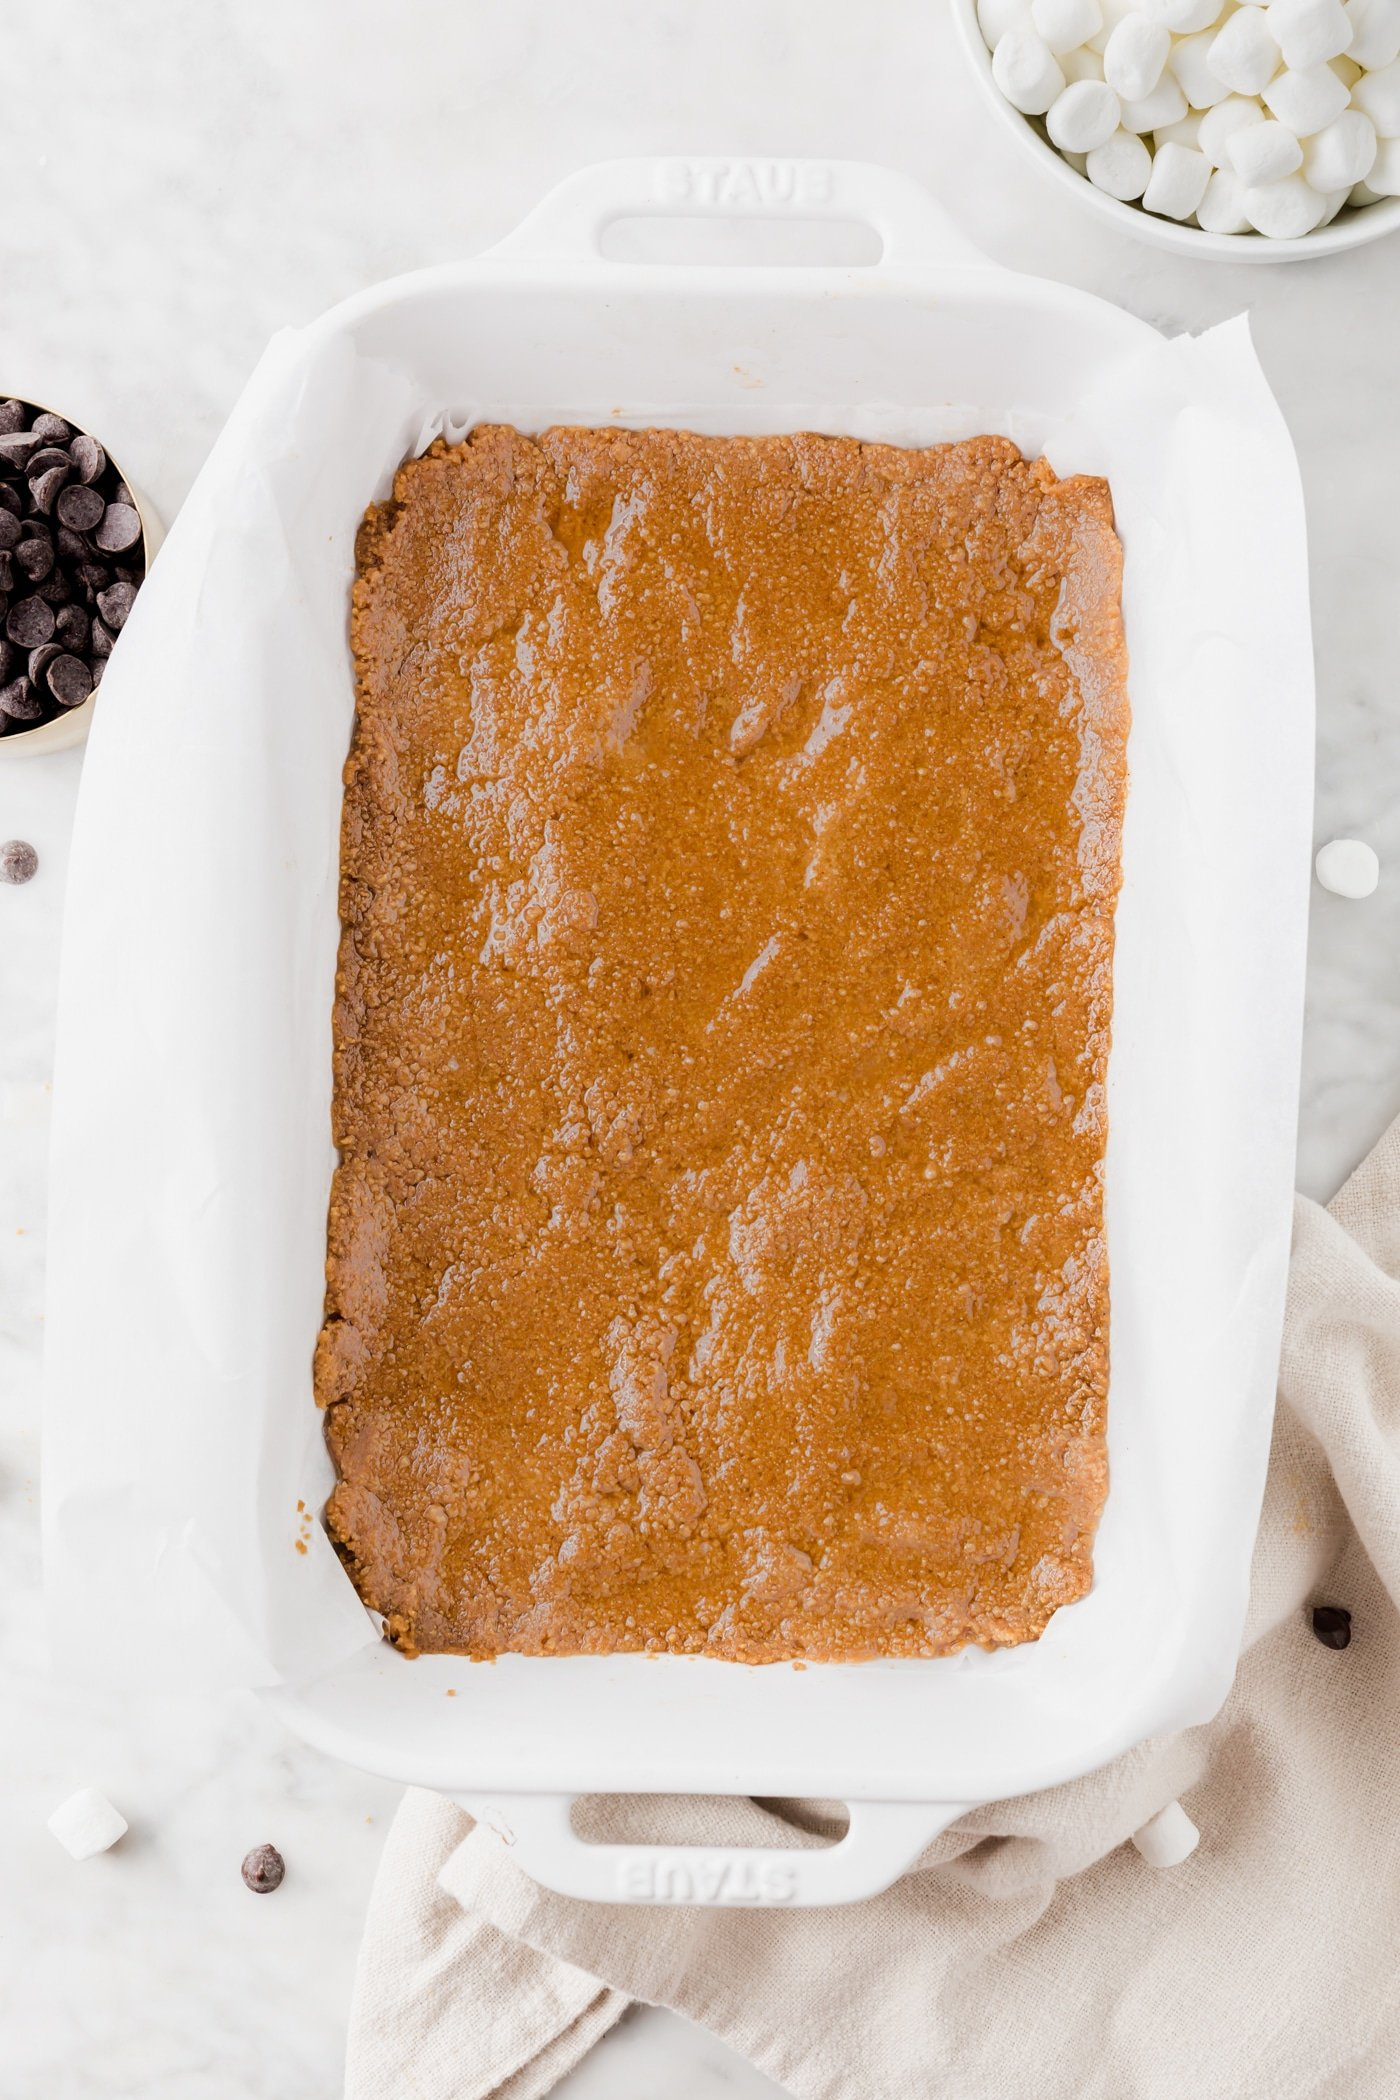 Gluten-free graham cracker crust pressed into the bottom of a baking dish lined with parchment paper.